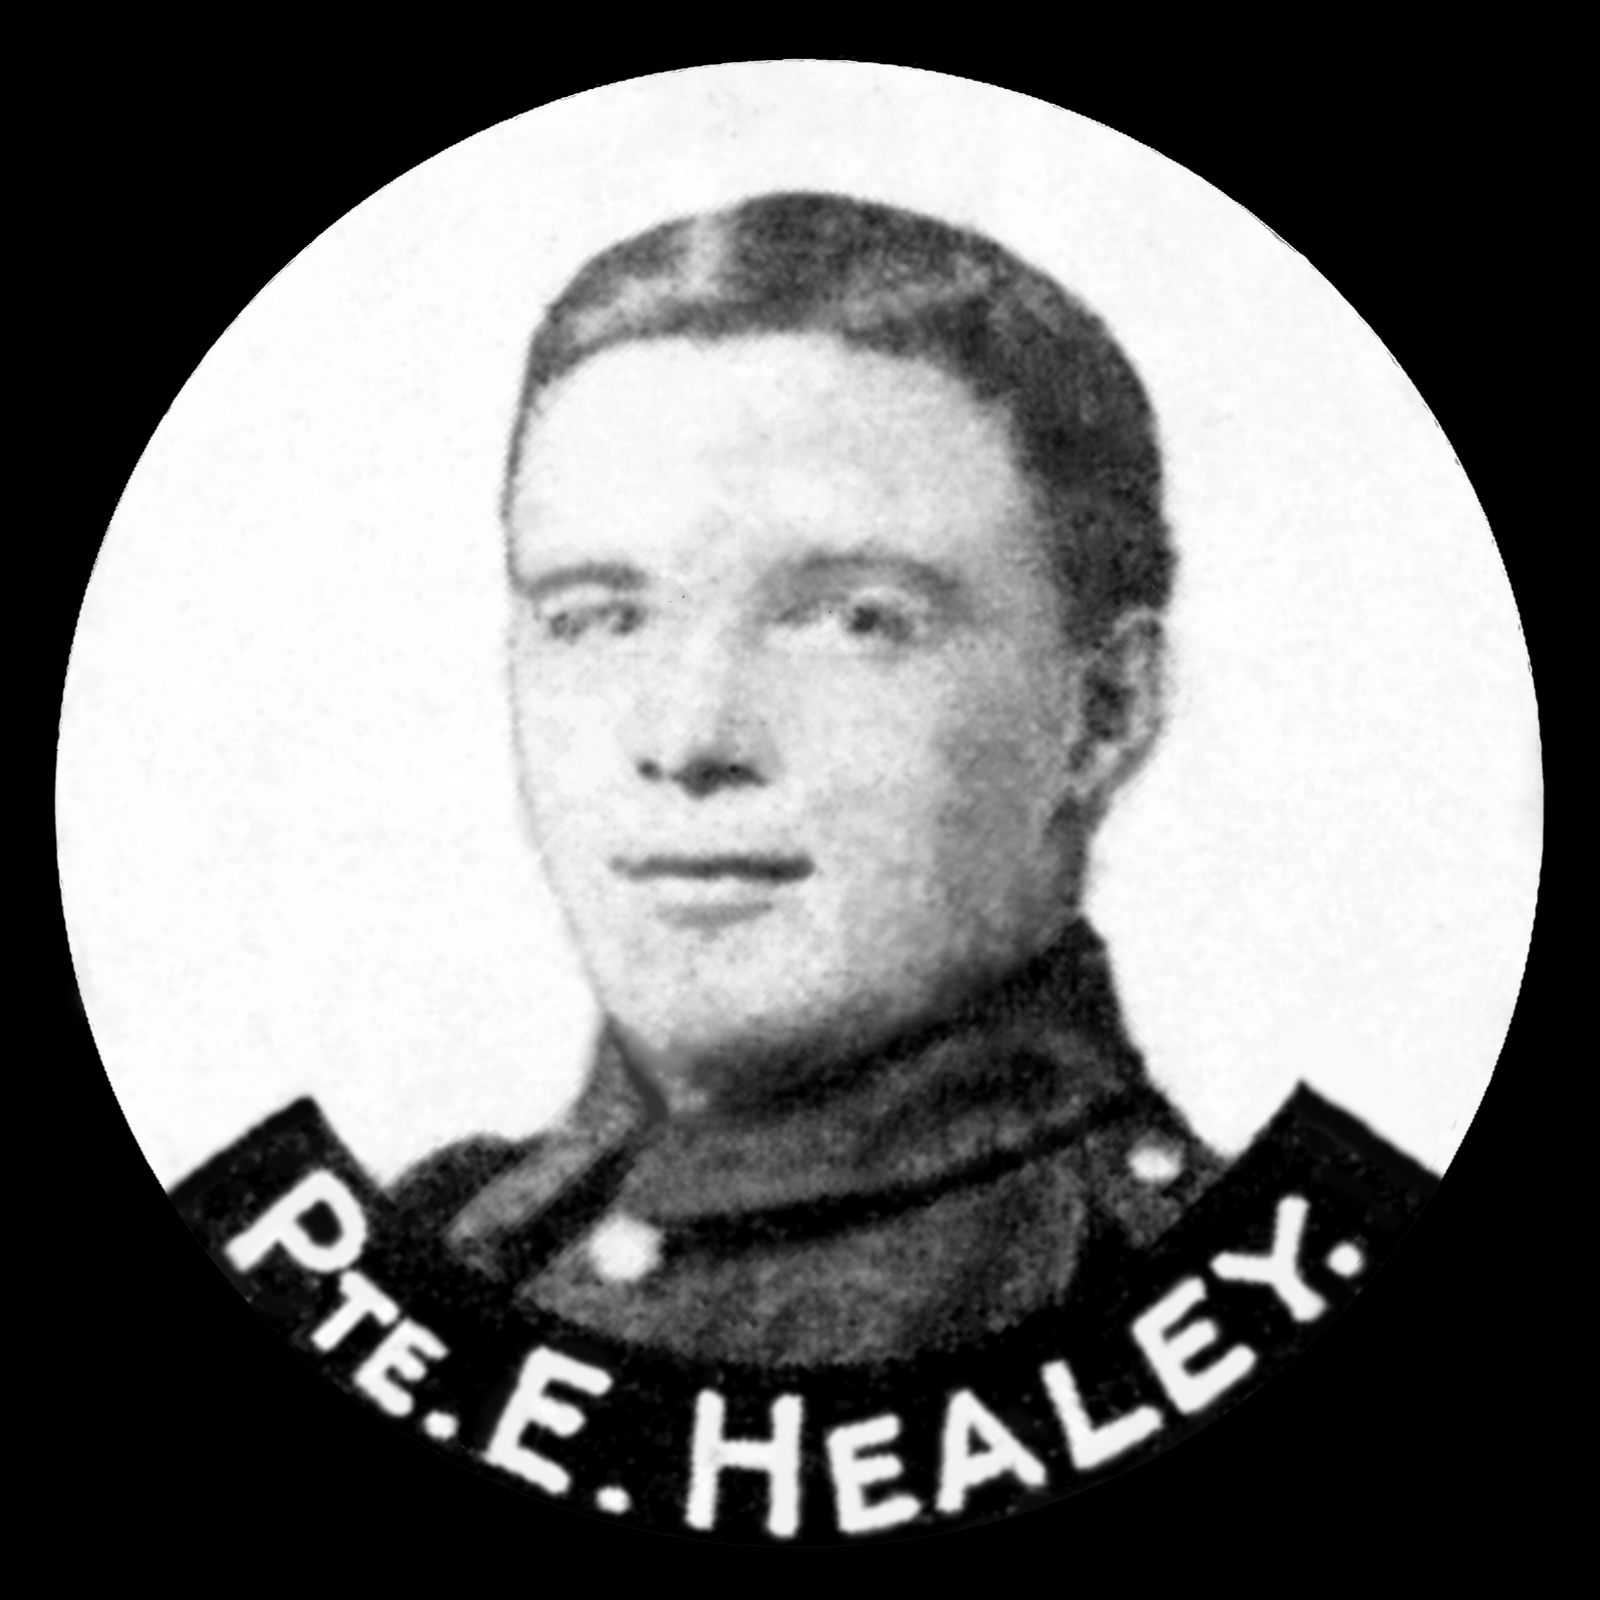 HEALEY Thomas Edward